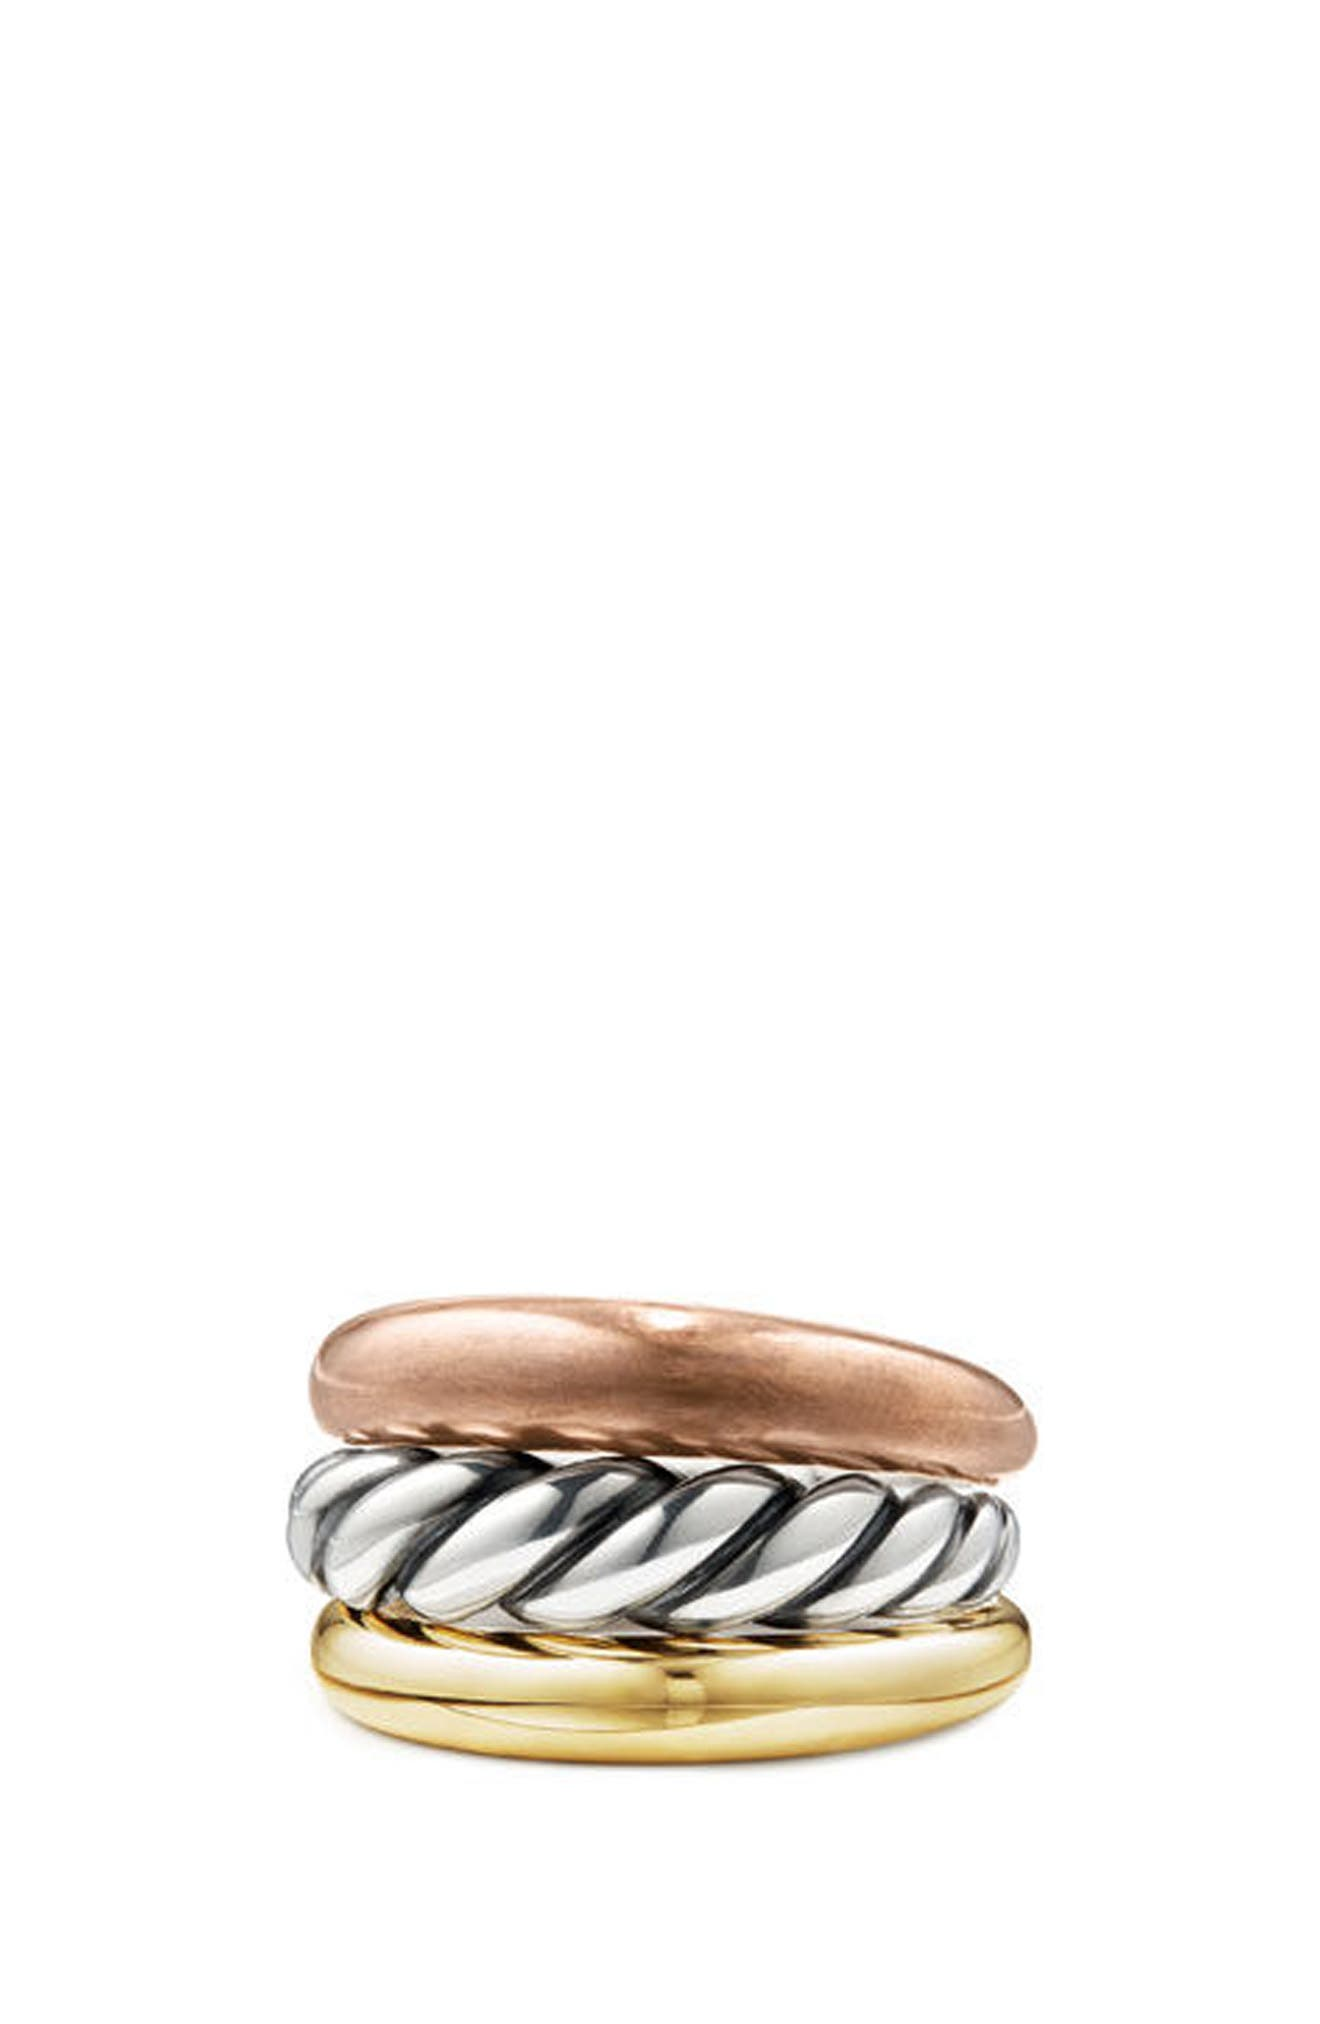 Pure Form Mixed Metal Three-Row Ring with Bronze, Silver & Brass,                         Main,                         color, 040